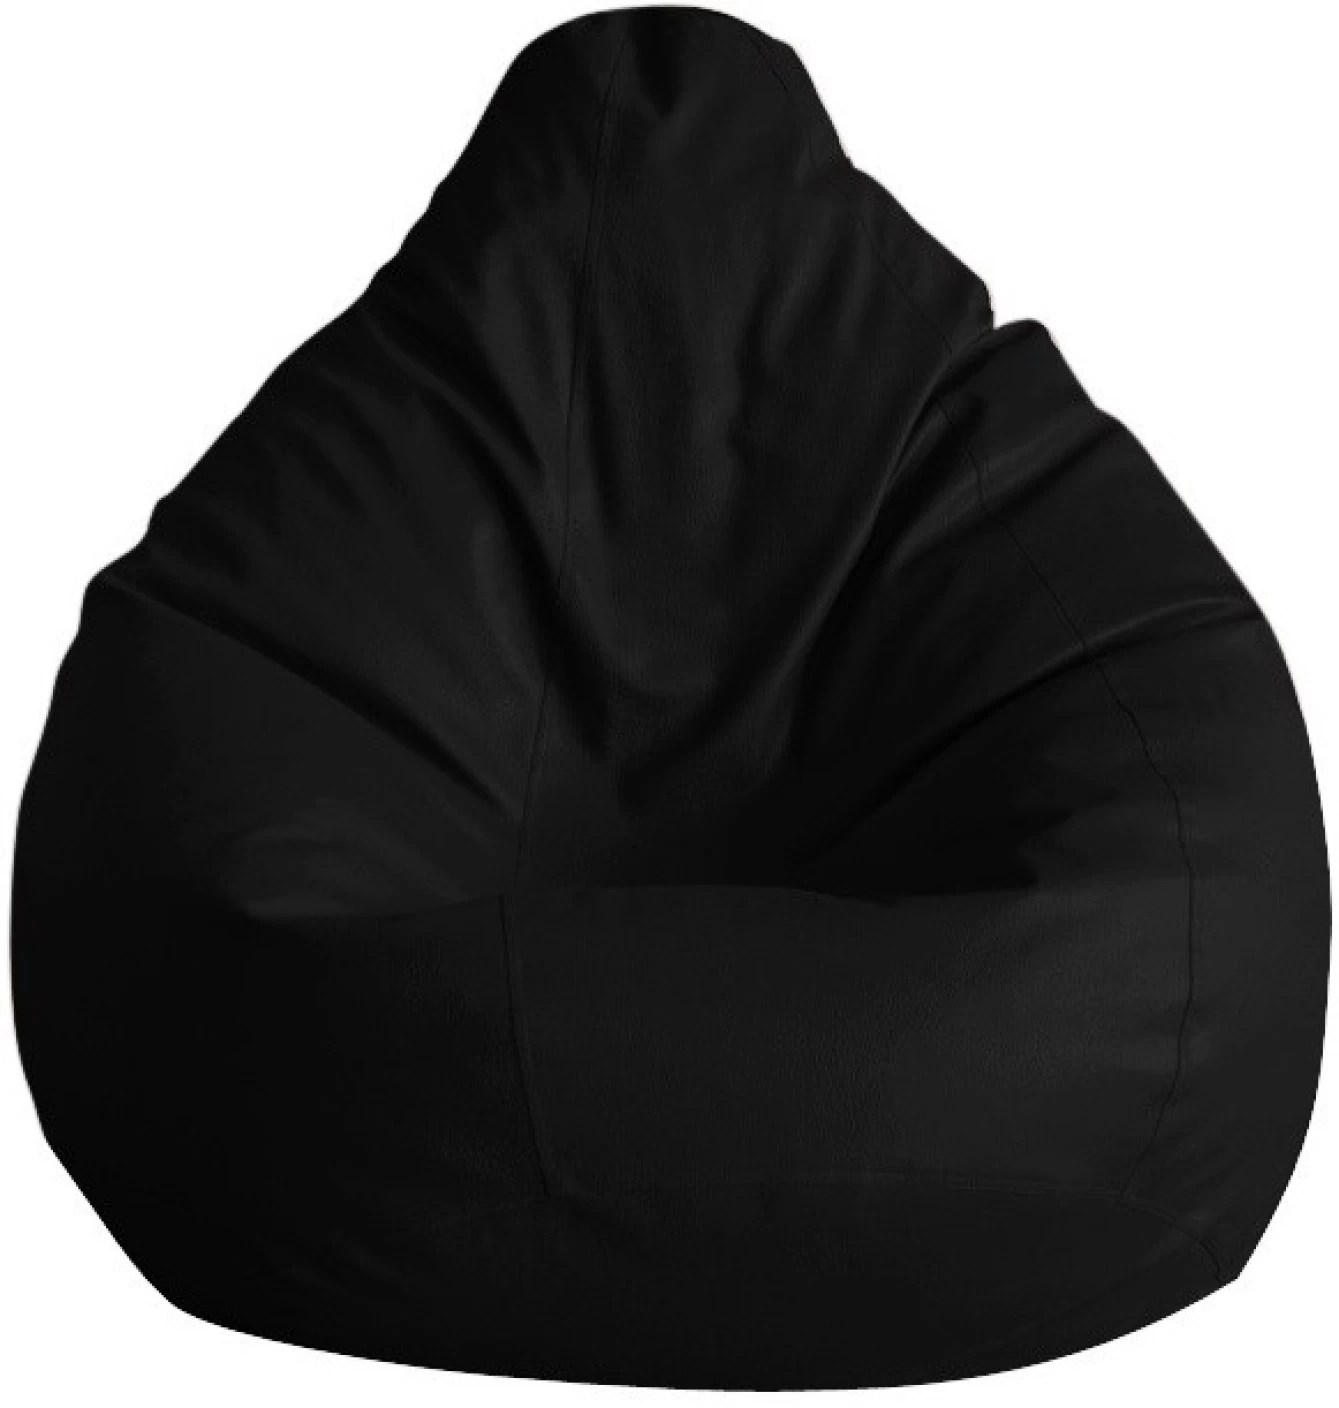 bean bag sofas india scandinavian style comfort xxxl with filling price in